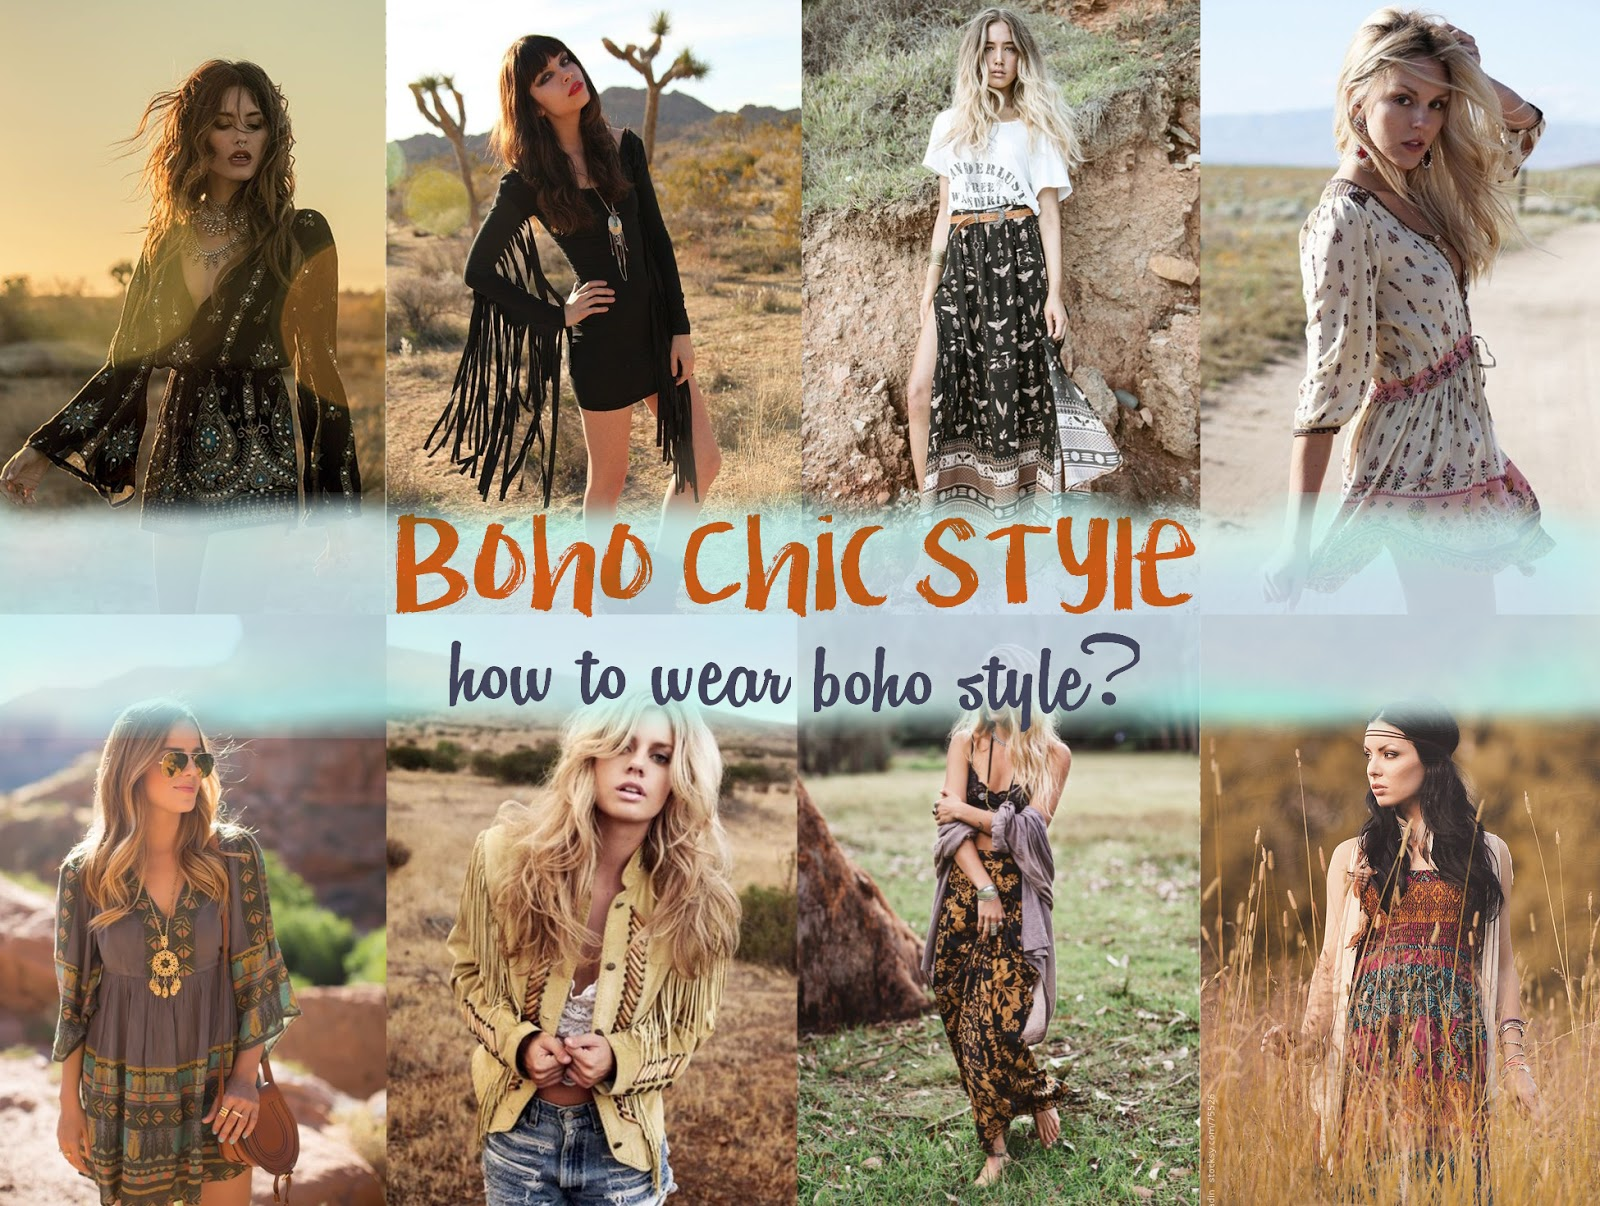 Boho chic style how to style wear boho outfit glam Bohemian style fashion blogs